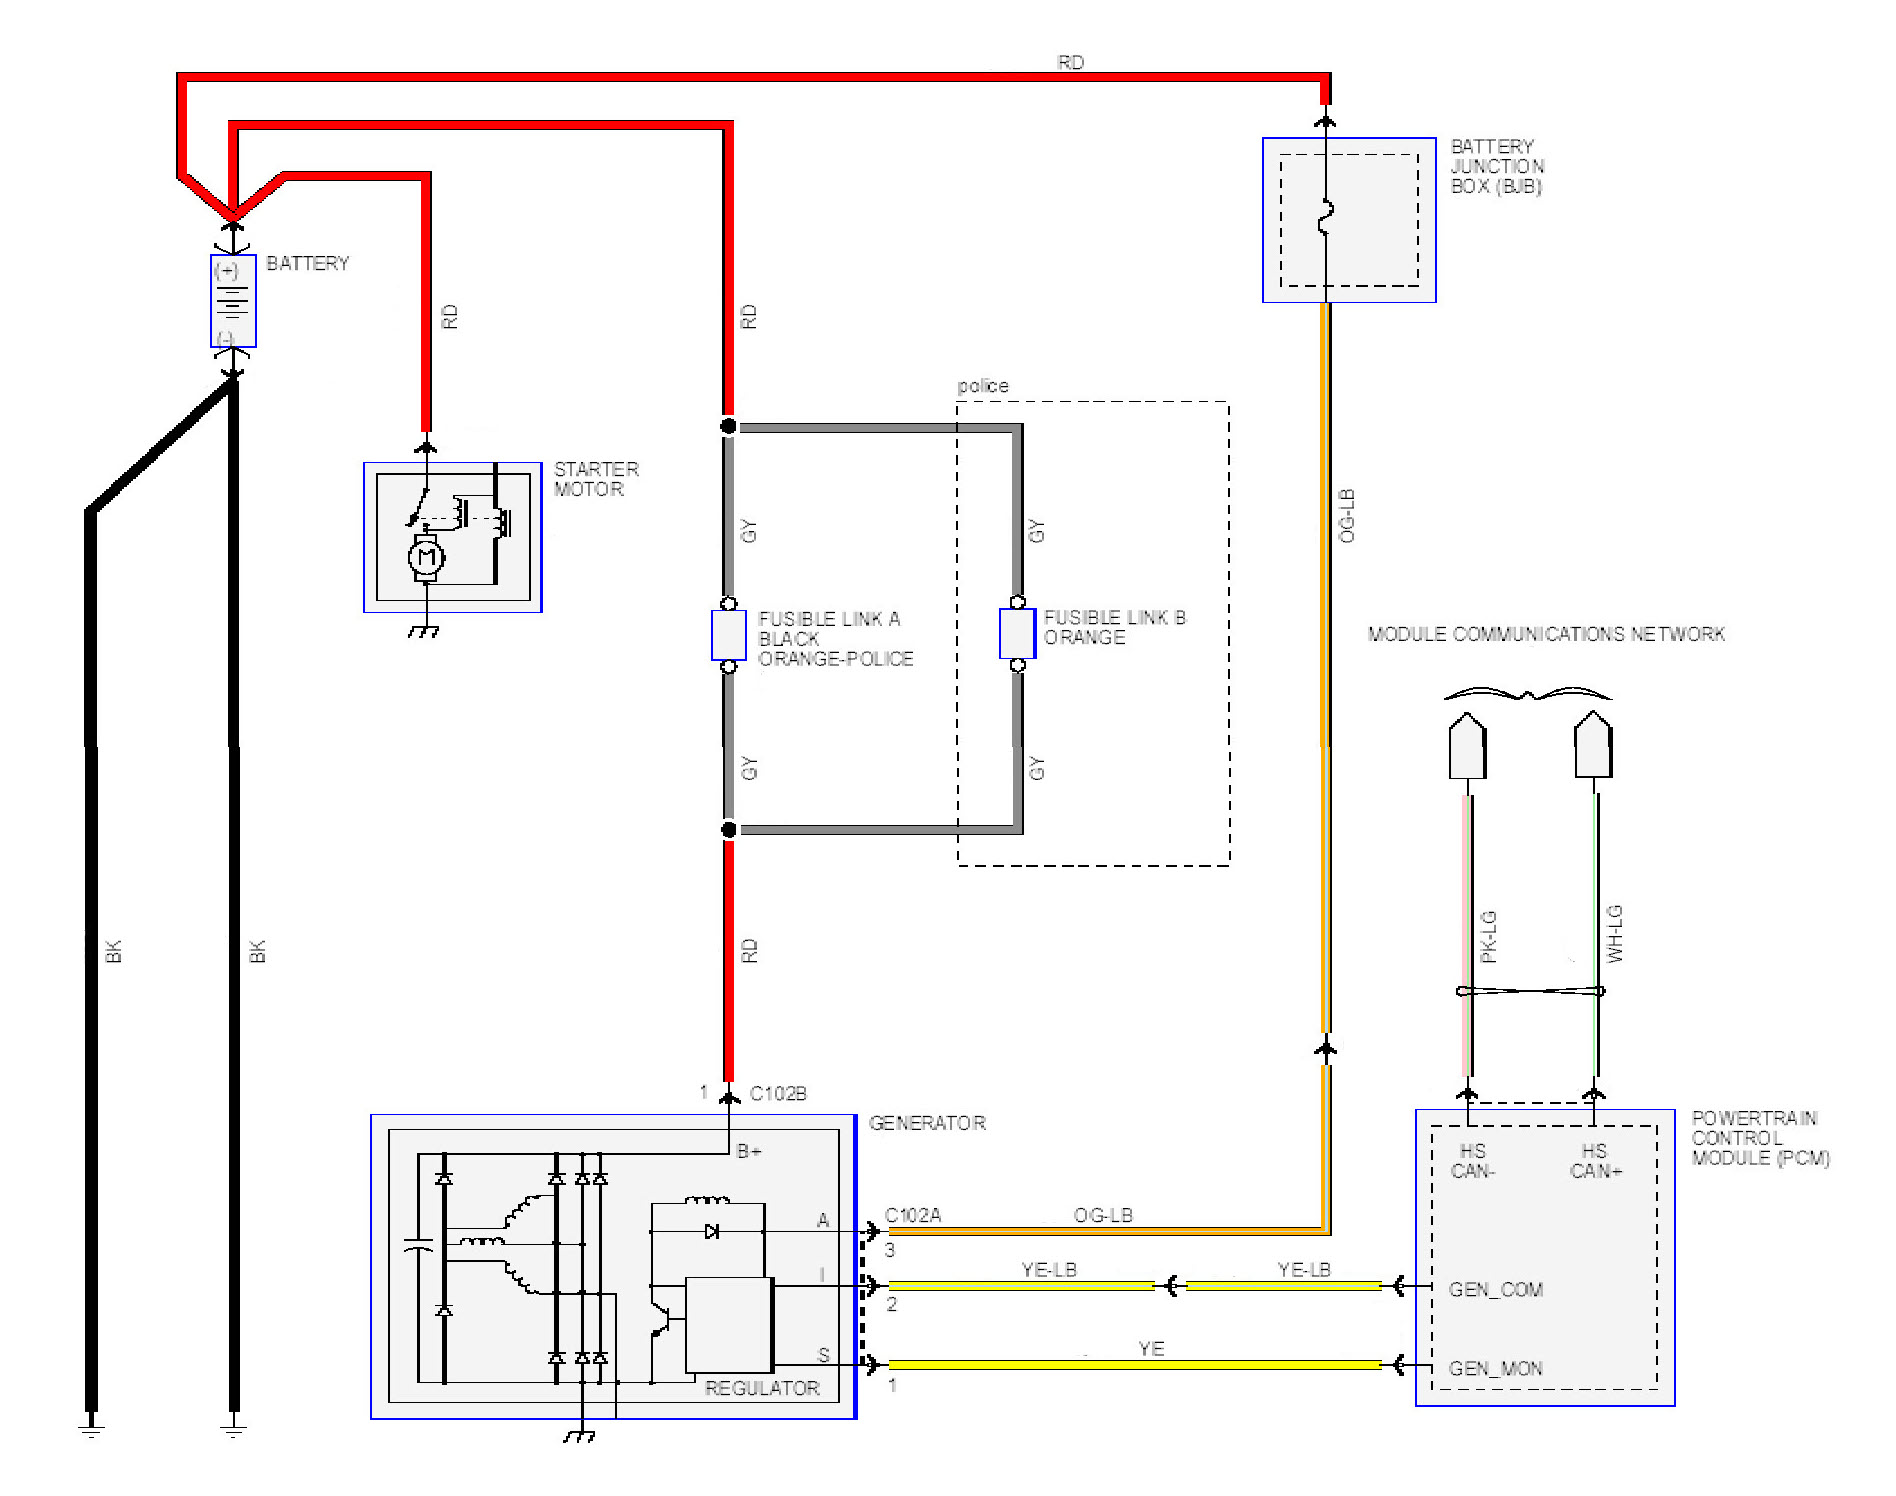 Ford Crown Victoria Alternator Wiring Diagrams on